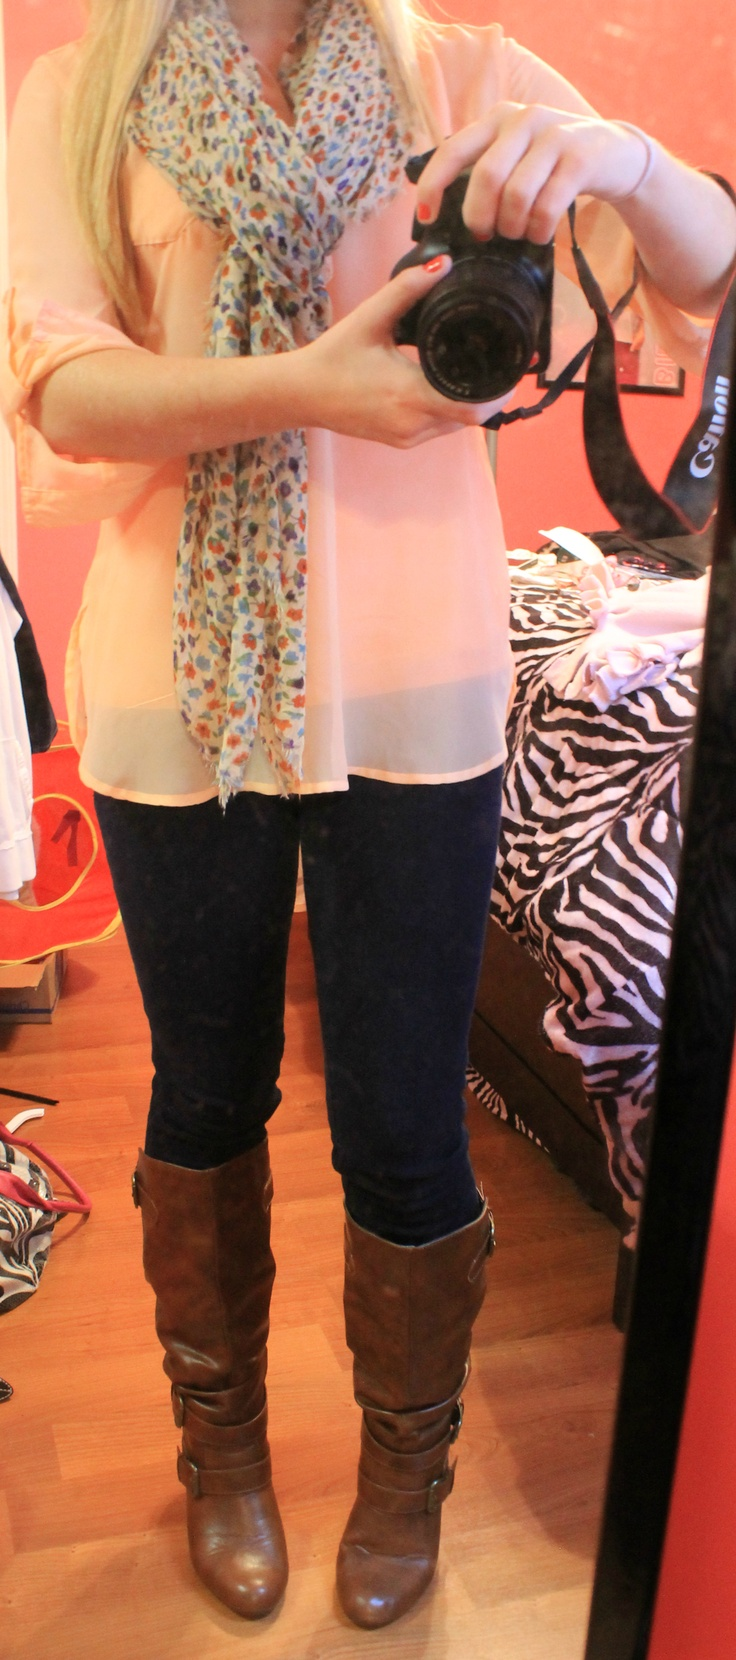 top from rue 21, jeans from hollister, boots from famous footwear  scarf from target! early spring outfit! :)